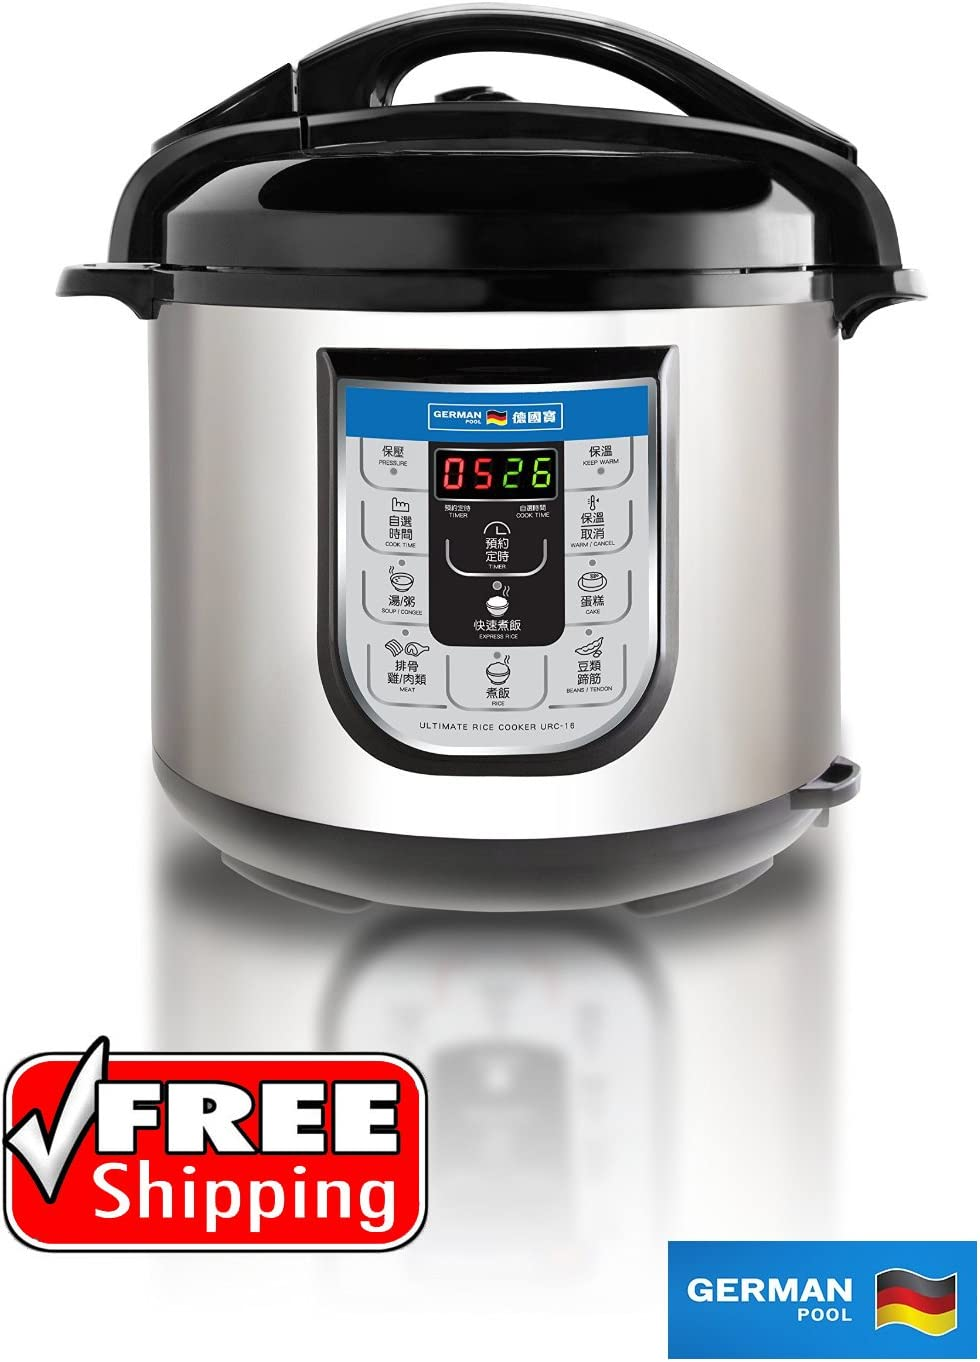 German Pool 120V 6 Litre Ultimate Rice Cooker Combining Electric Stewing Pots